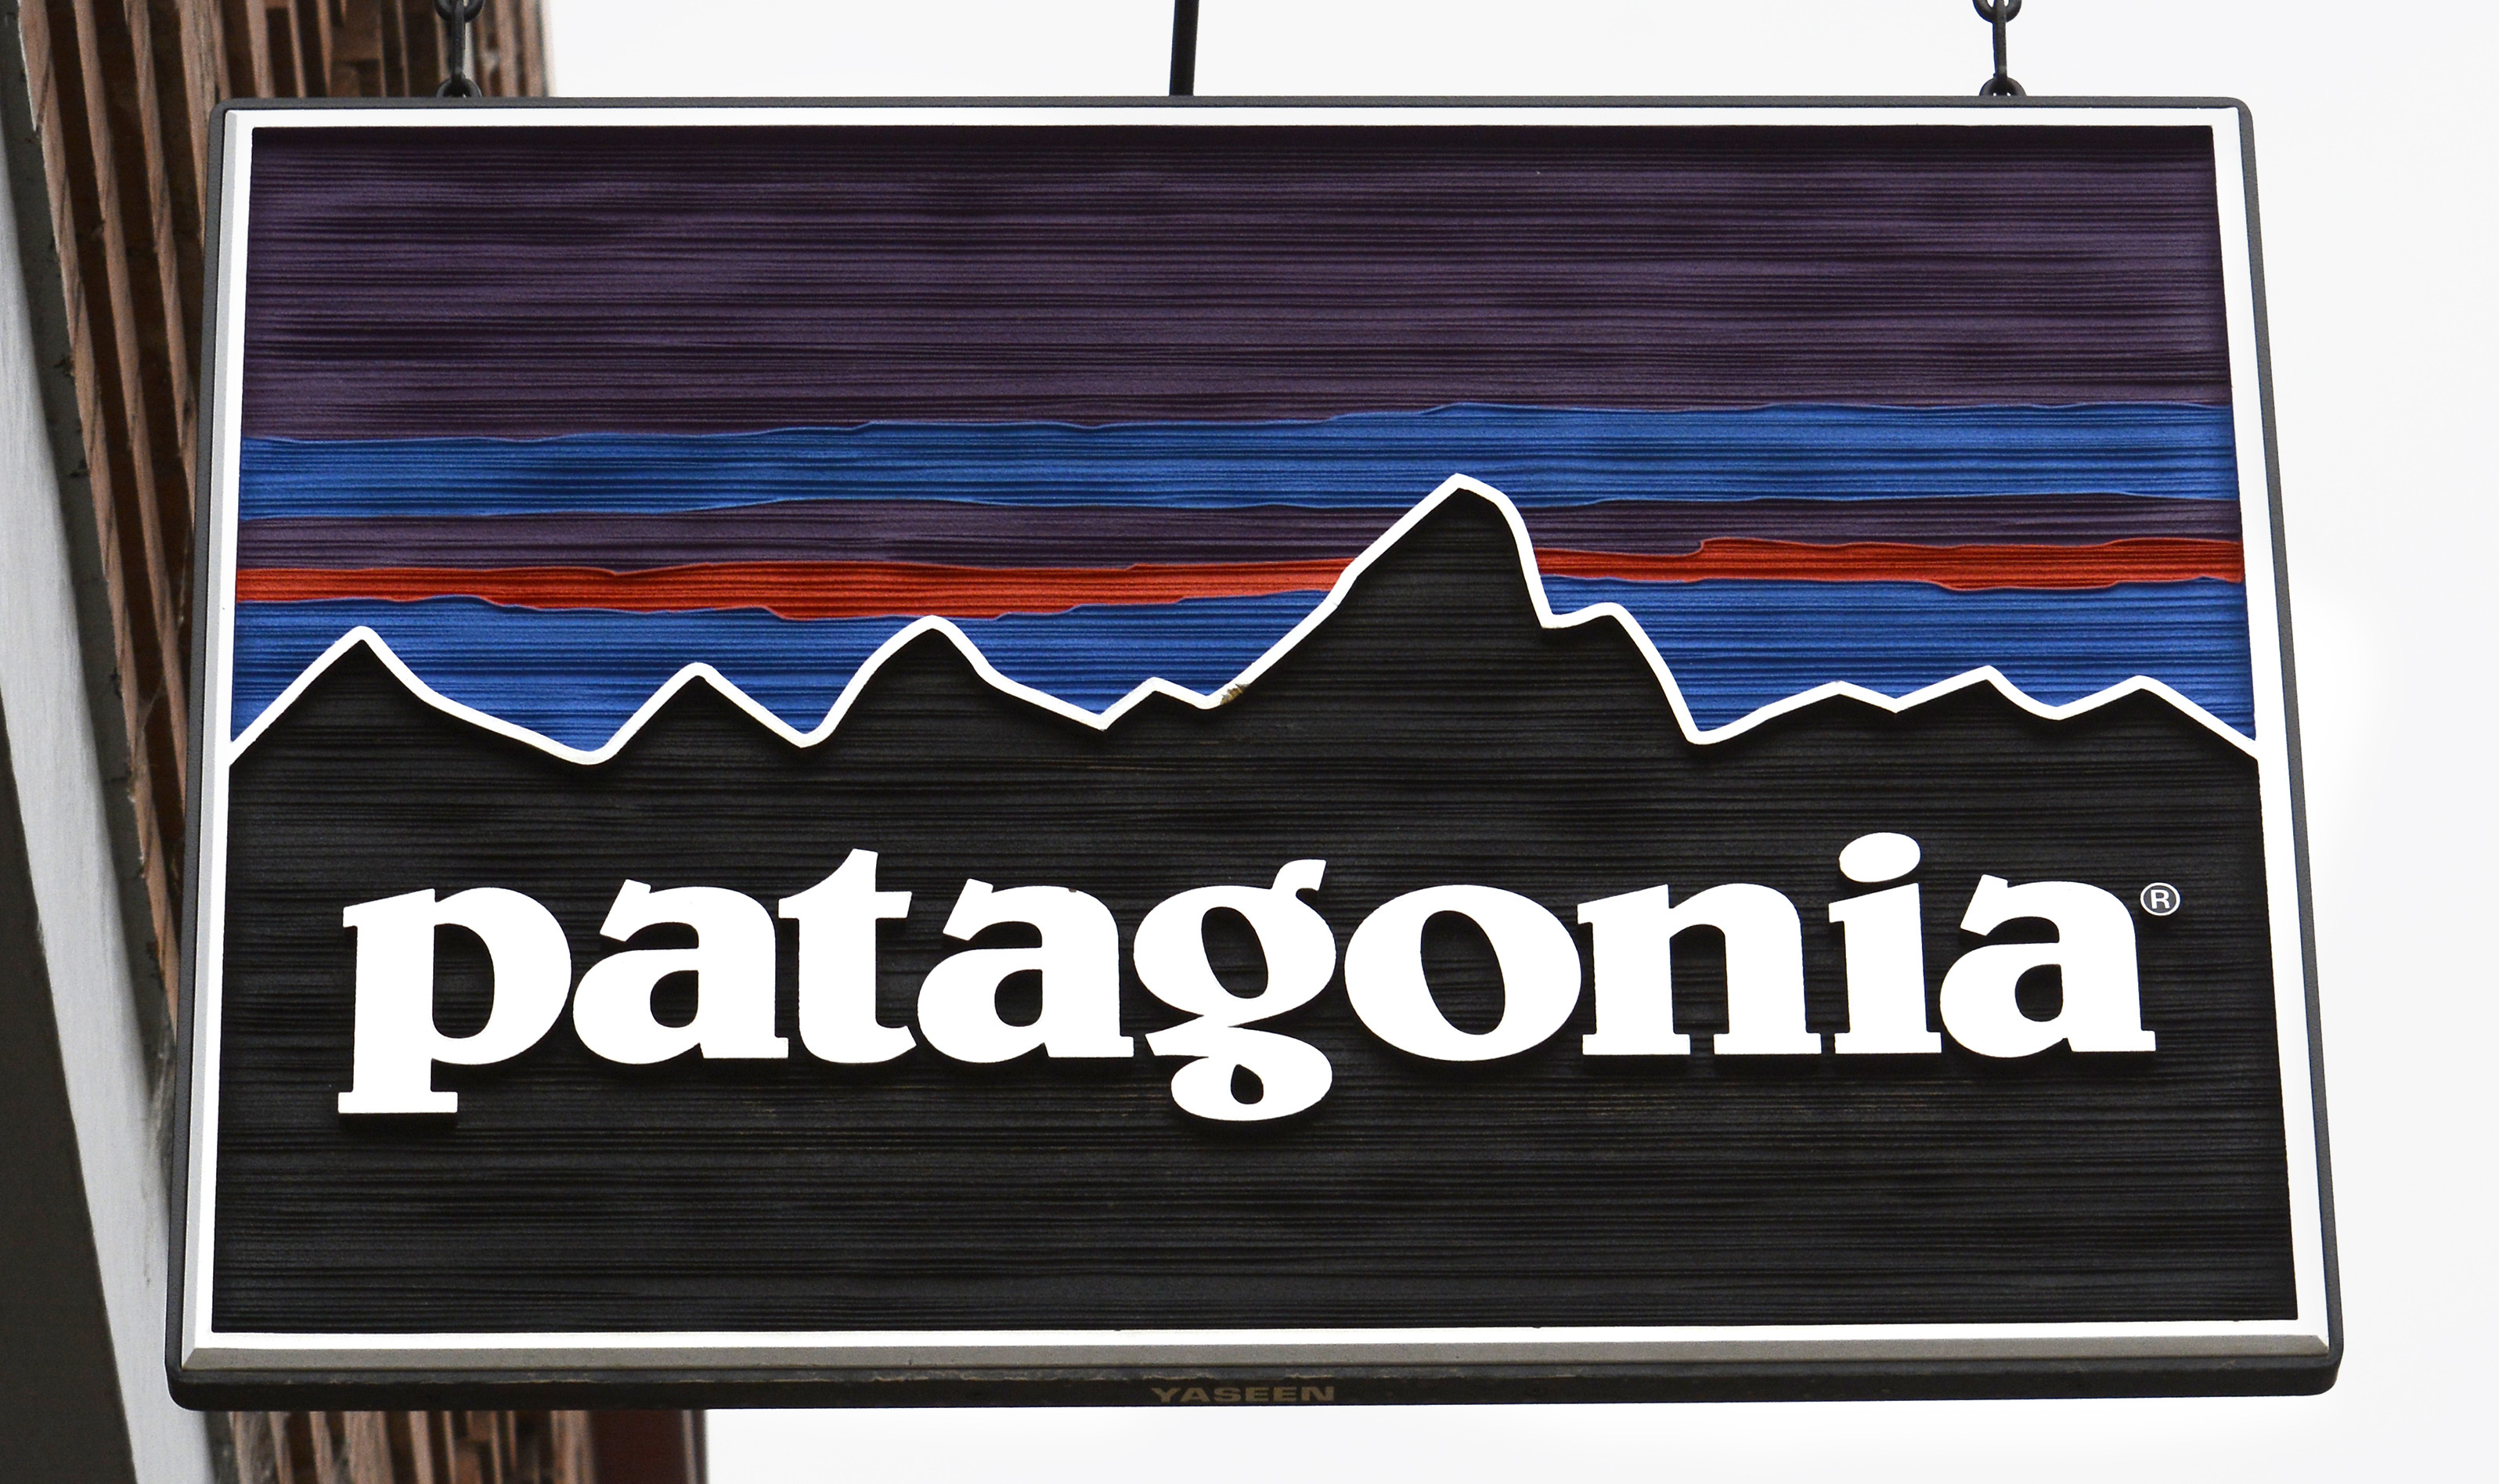 Patagonia Outdoors